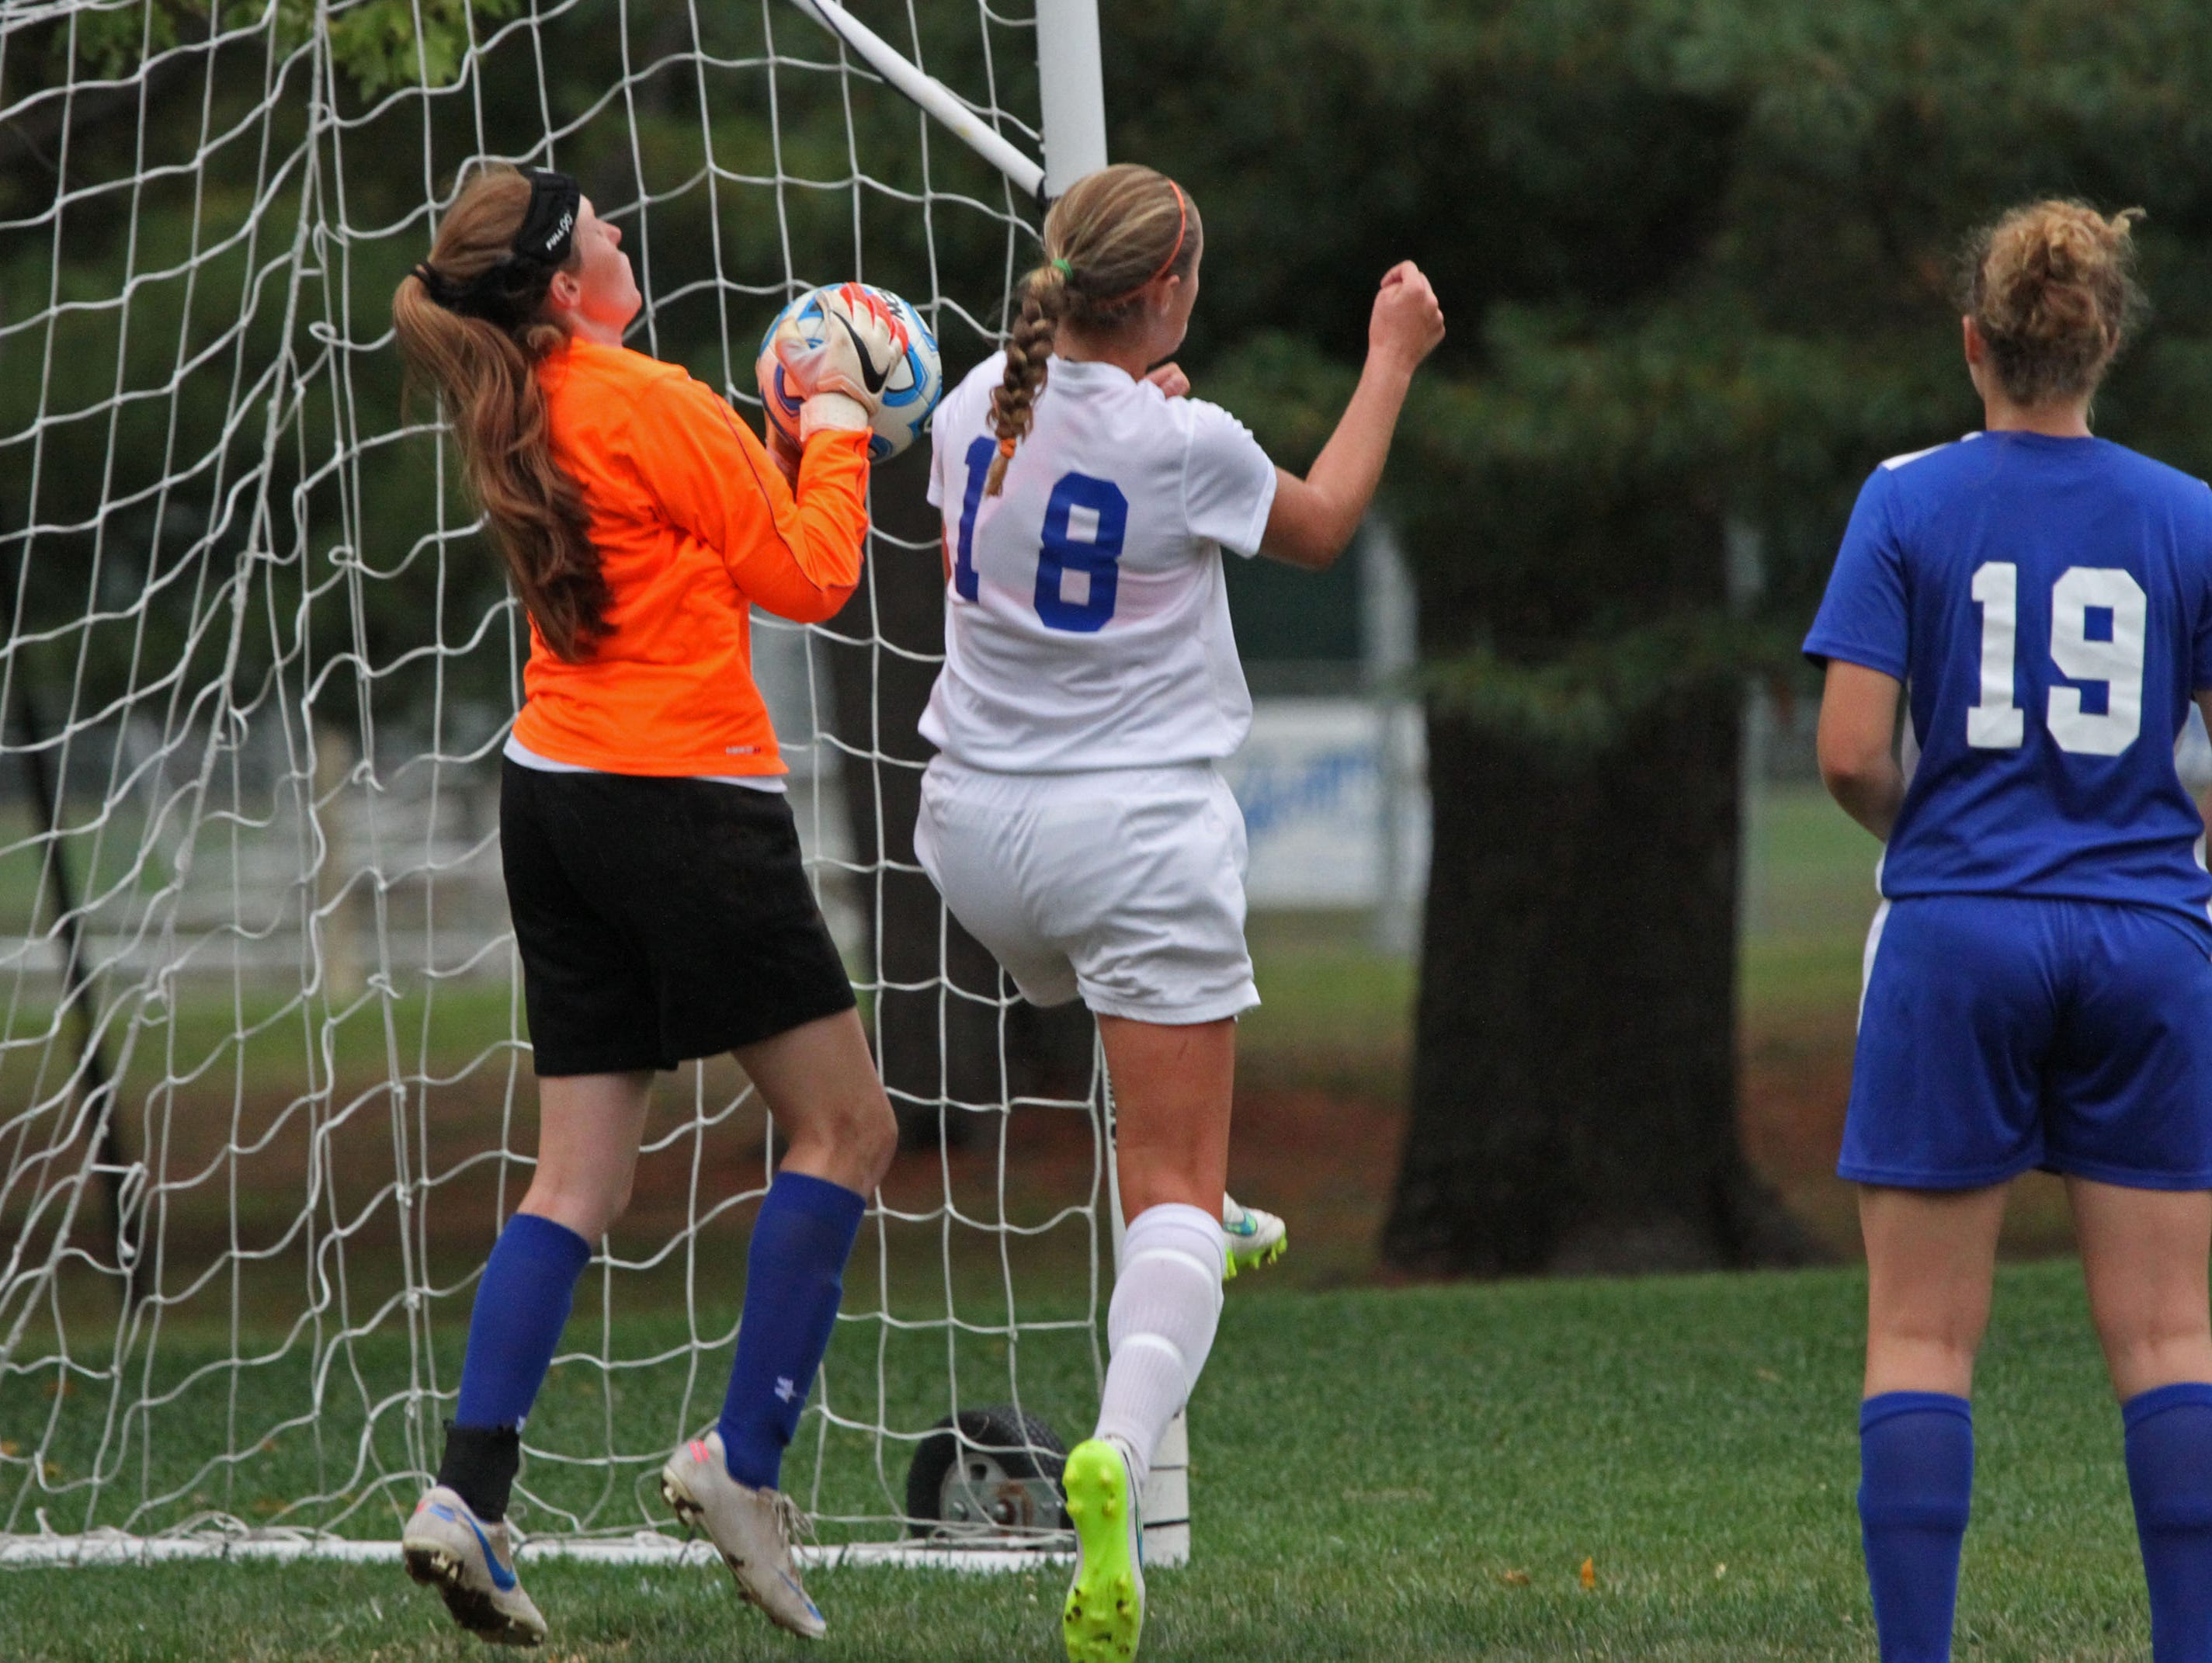 Metuchen goalie Emily Buchanan makes a save in girls soccer game at Middlesex. On offense is Mackenzie Meixner (18) for Middlesex.